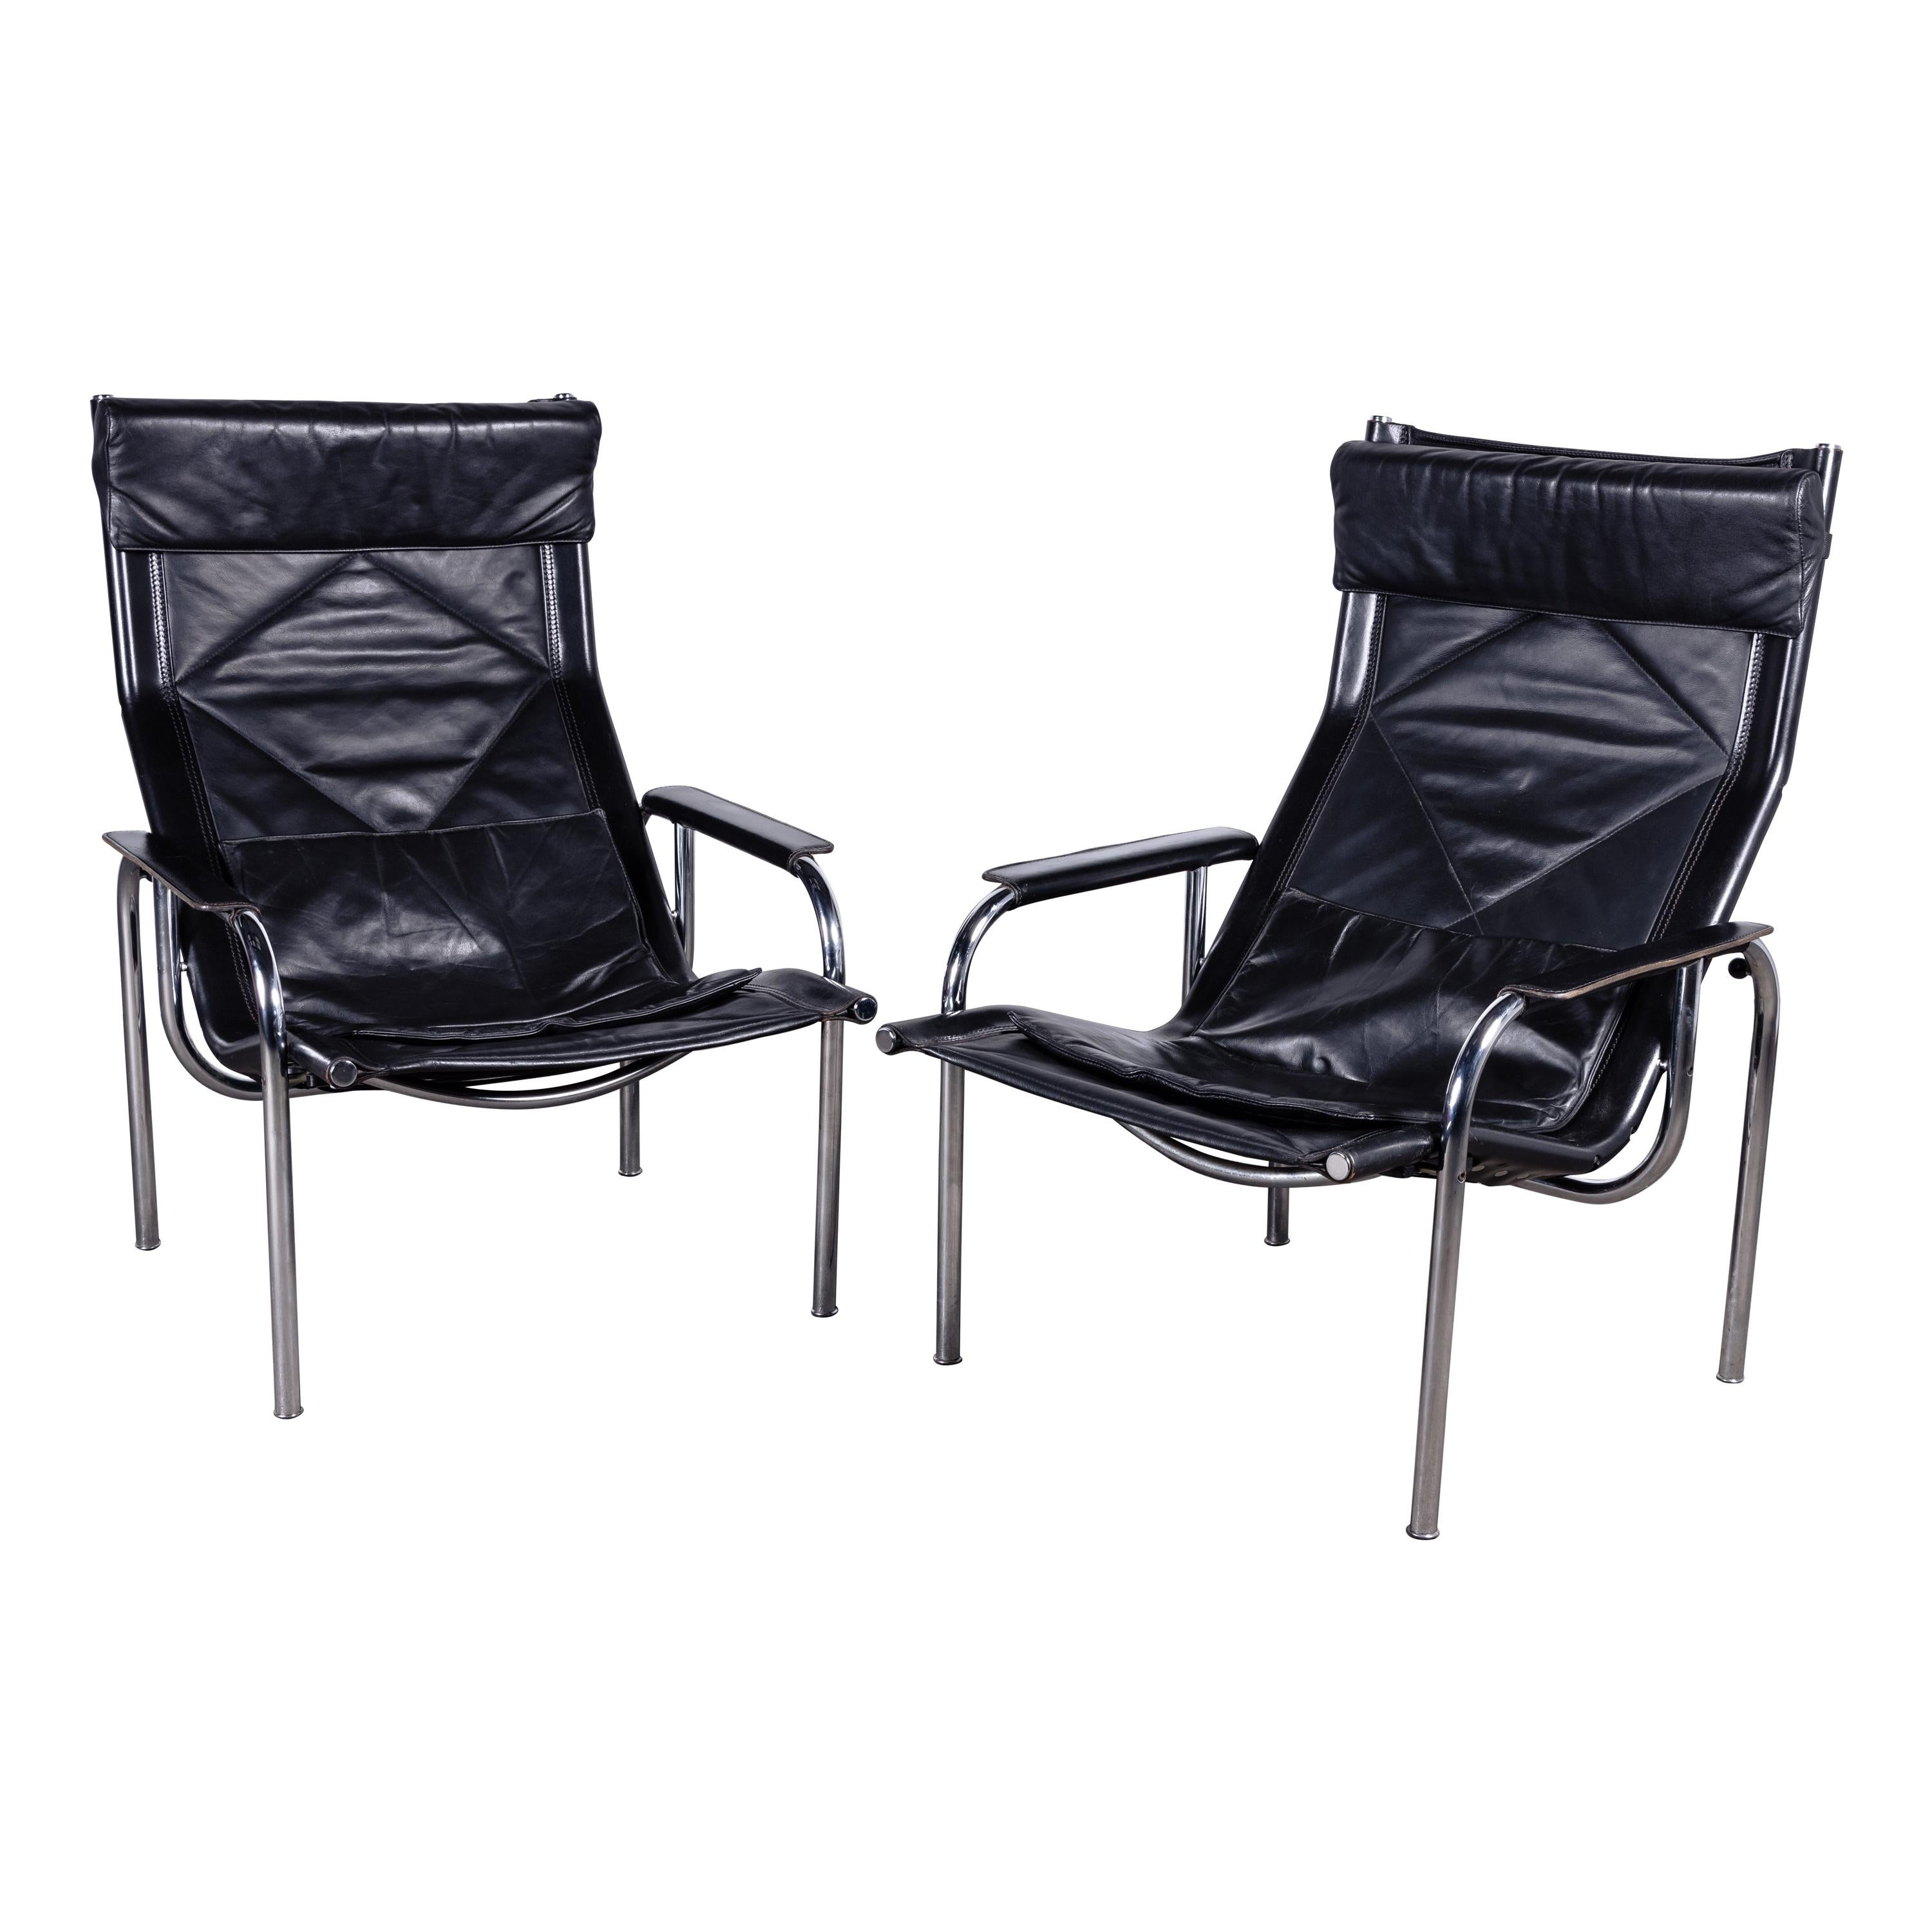 Pair of Swiss Reclining Black Leather and Chrome Strässle Chairs by Eichenberger